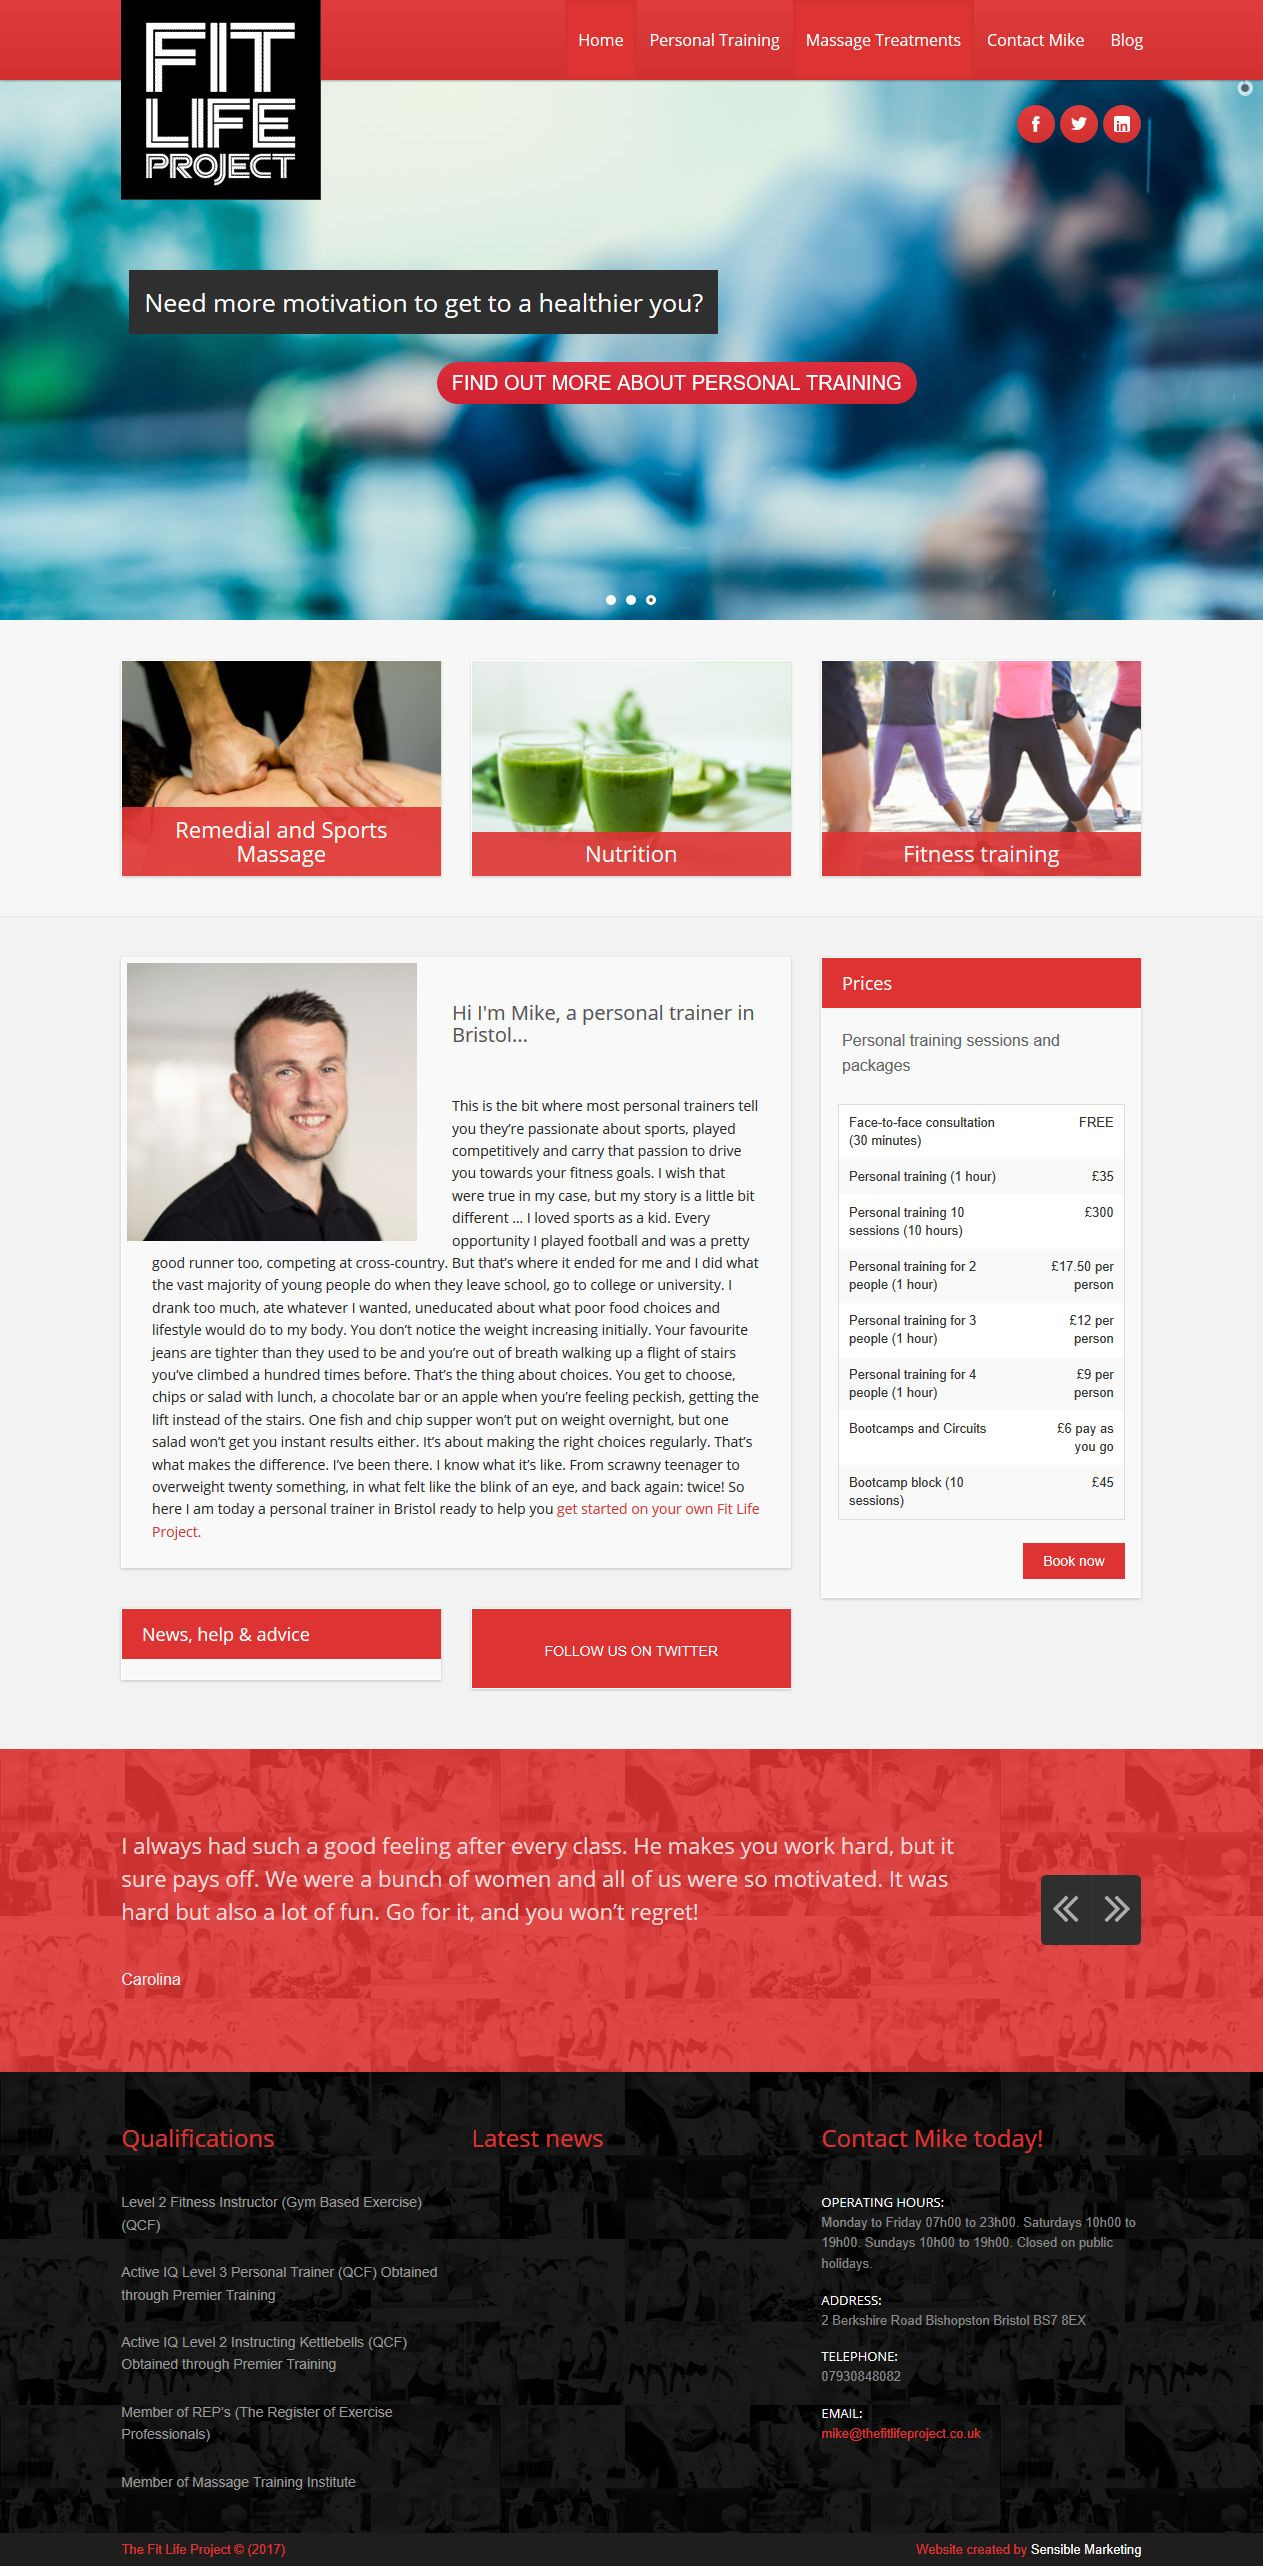 Screen shot of personal trainer website The Fit Life Project